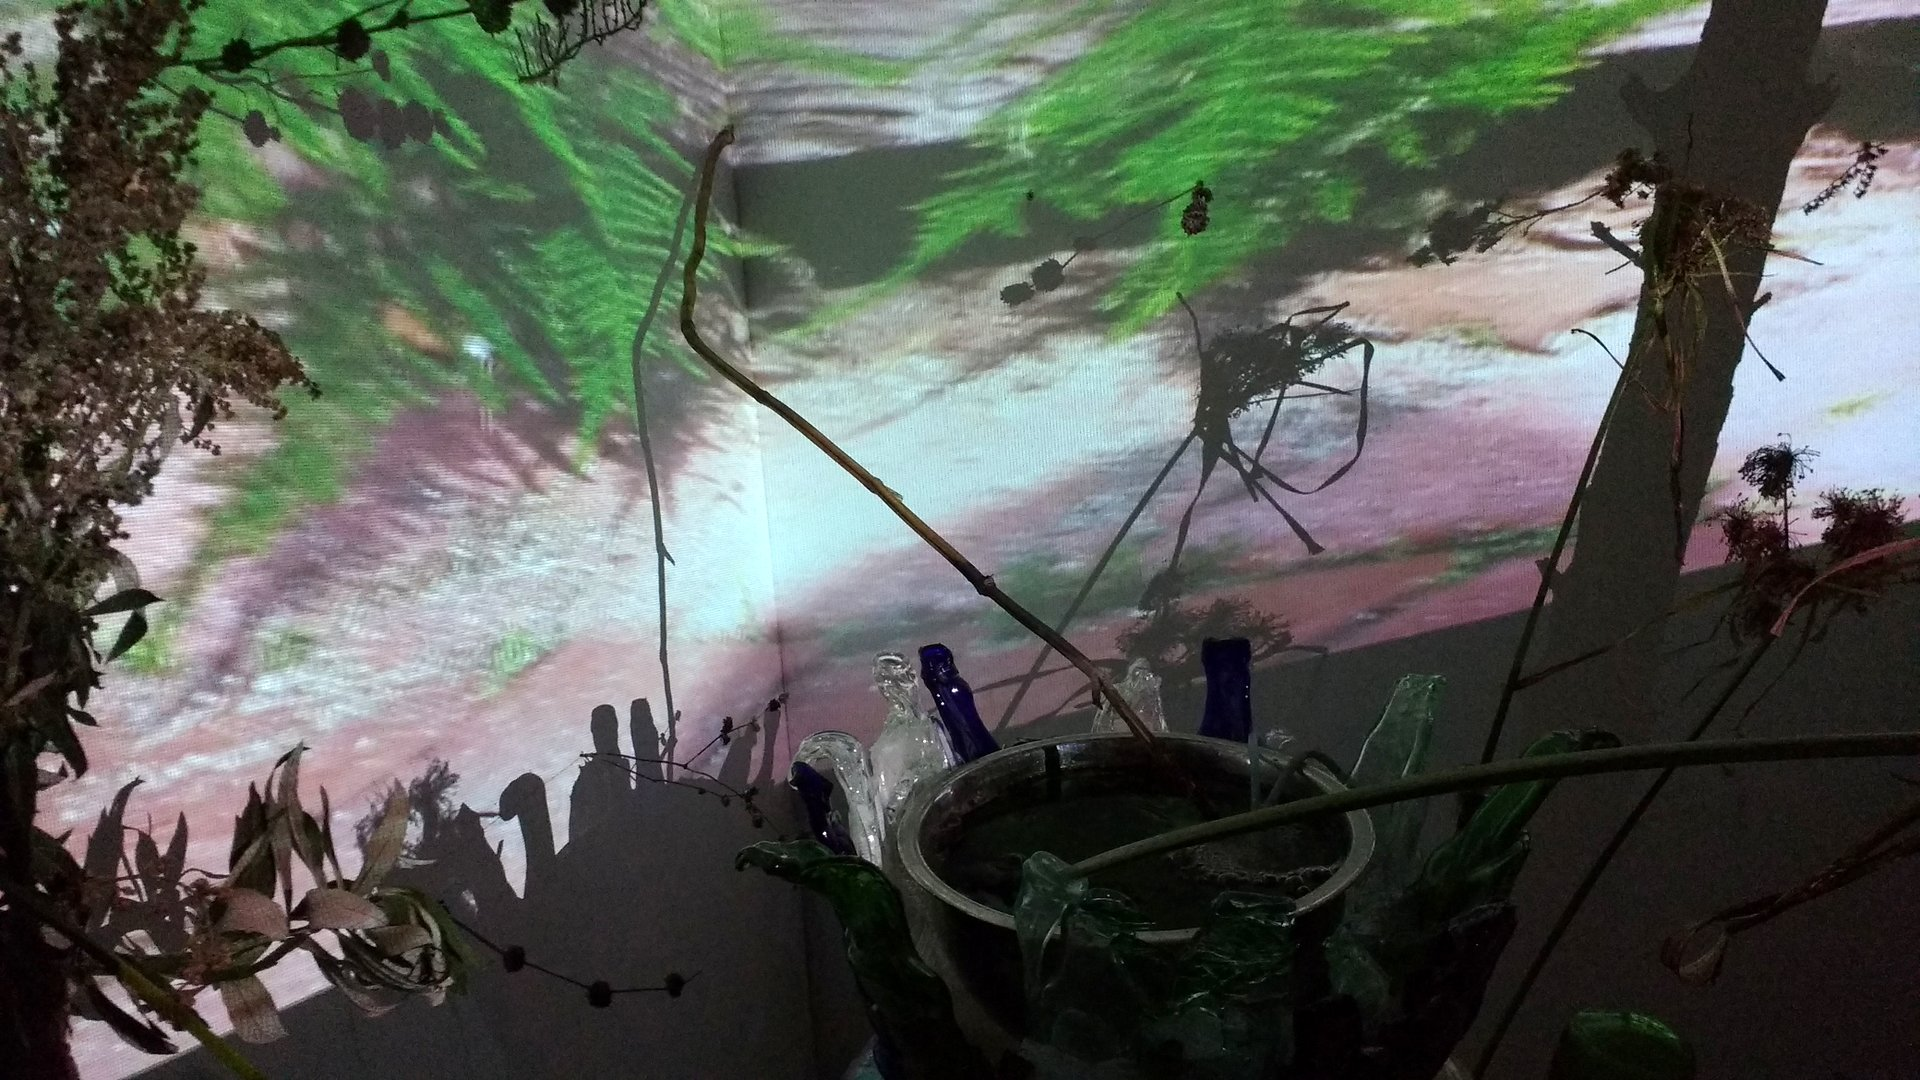 video projections on intersecting walls